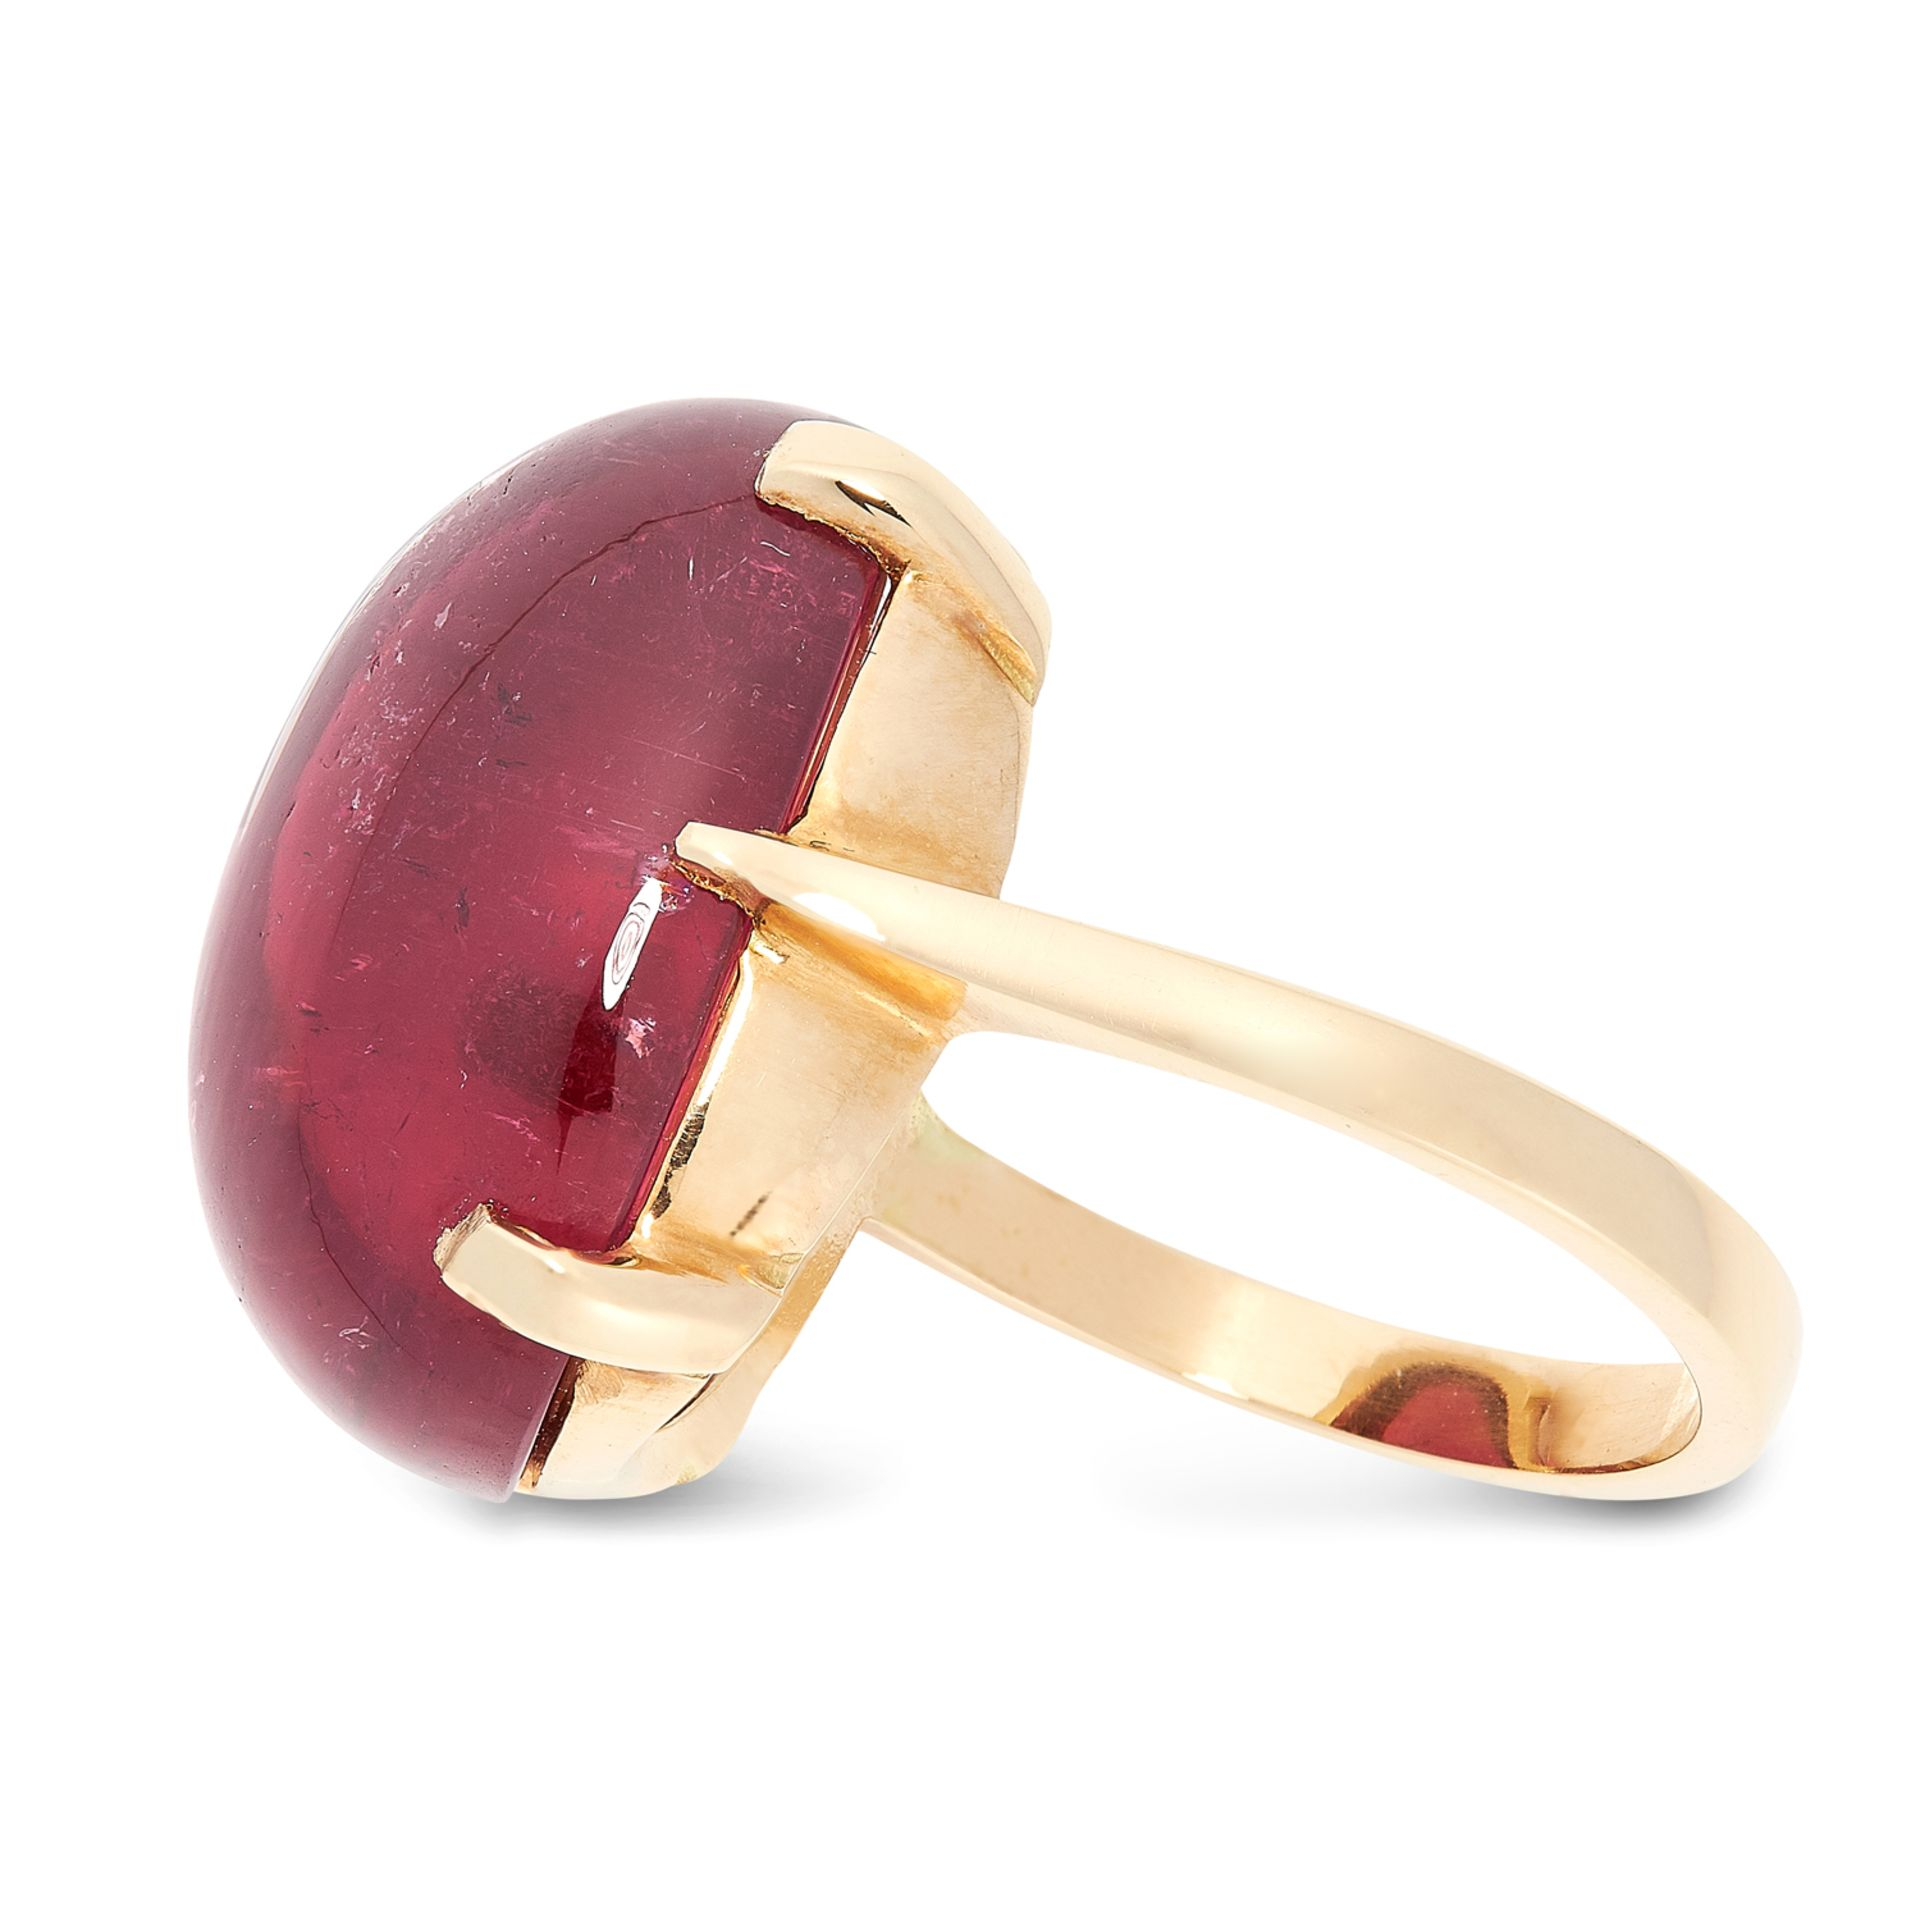 A PINK TOURMALINE DRESS RING in 18ct yellow gold, set with an oval cabochon pink tourmaline of 27.80 - Bild 2 aus 2